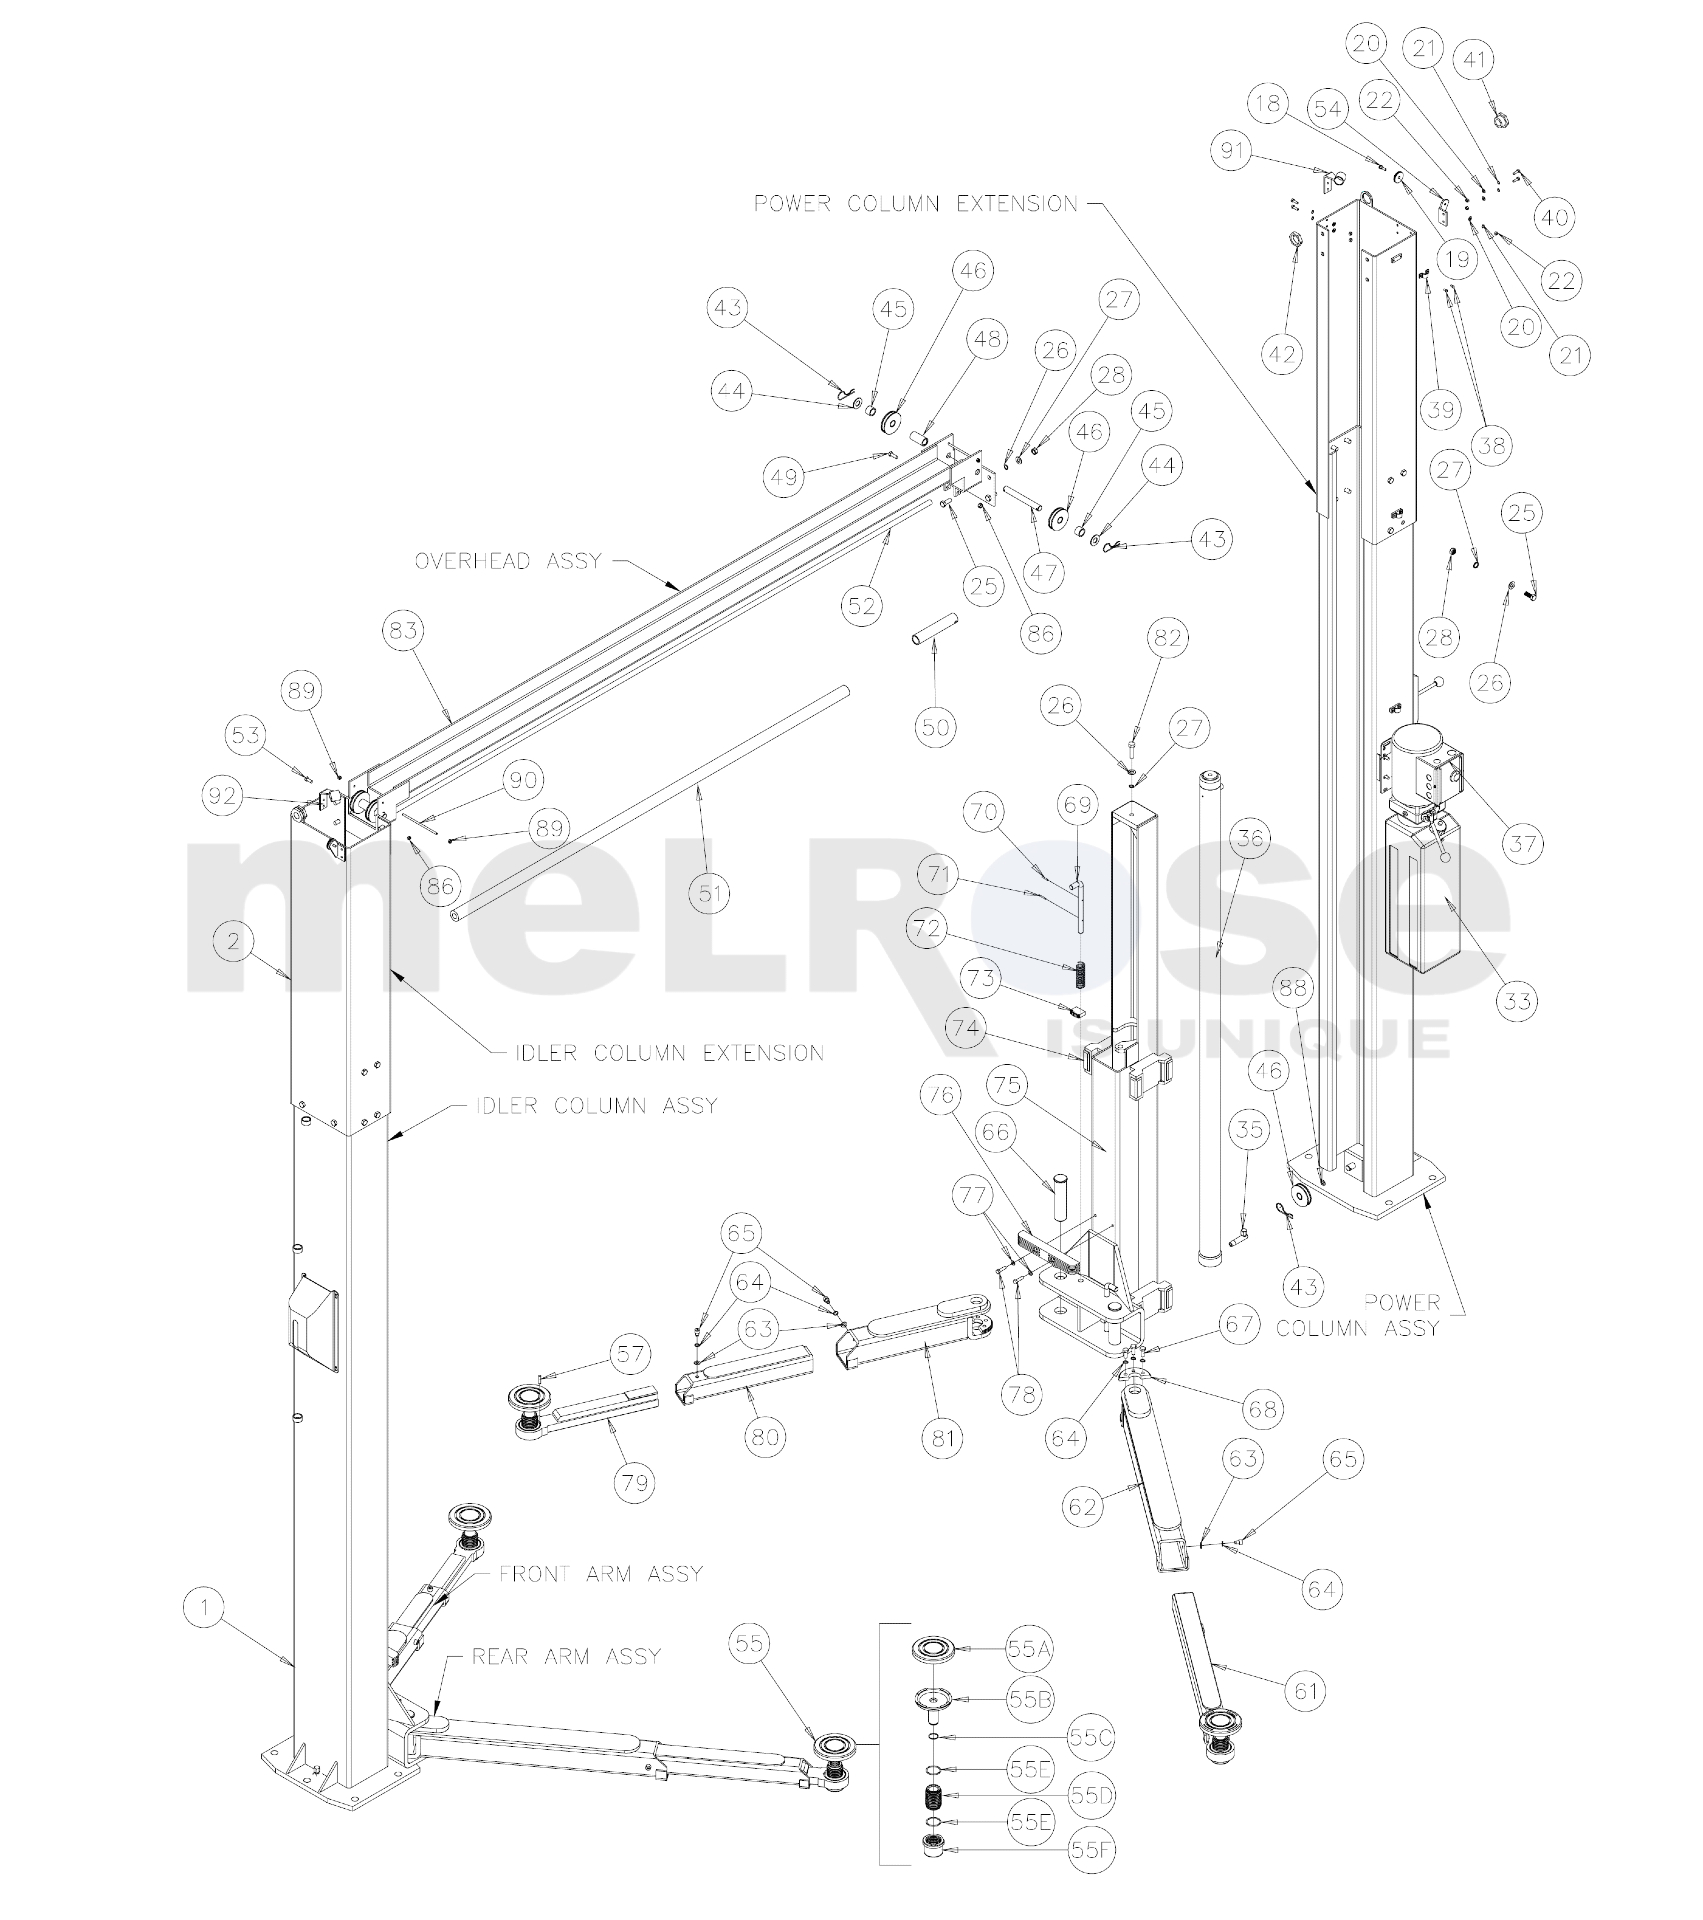 e10-complete-lift-diagram-marked.jpg